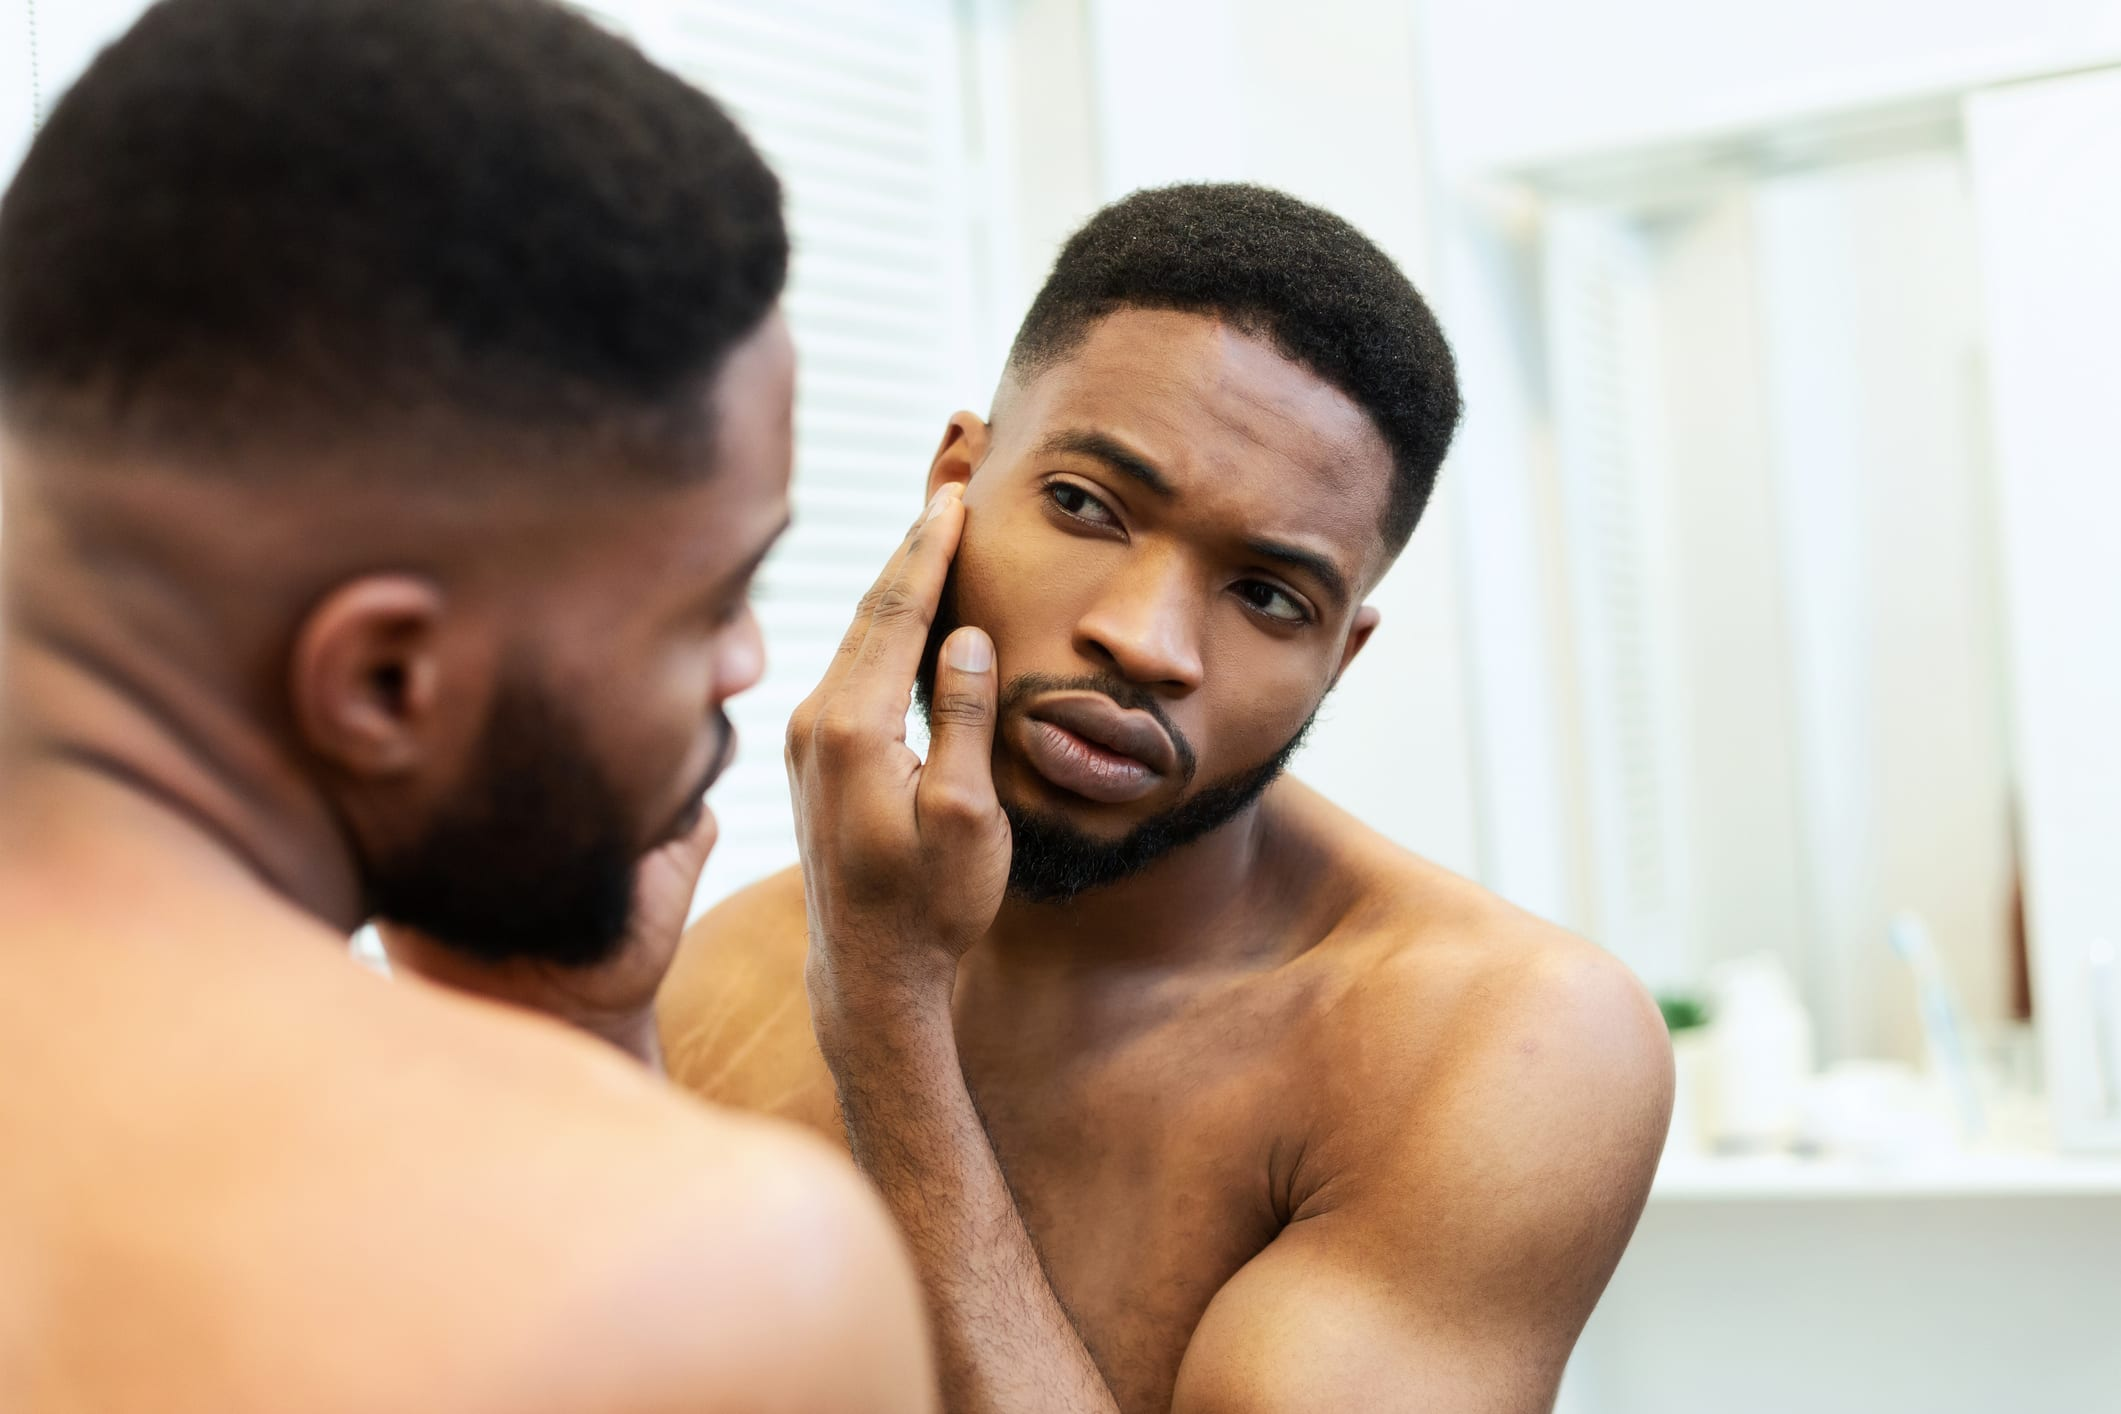 Young guy checking his face in mirror